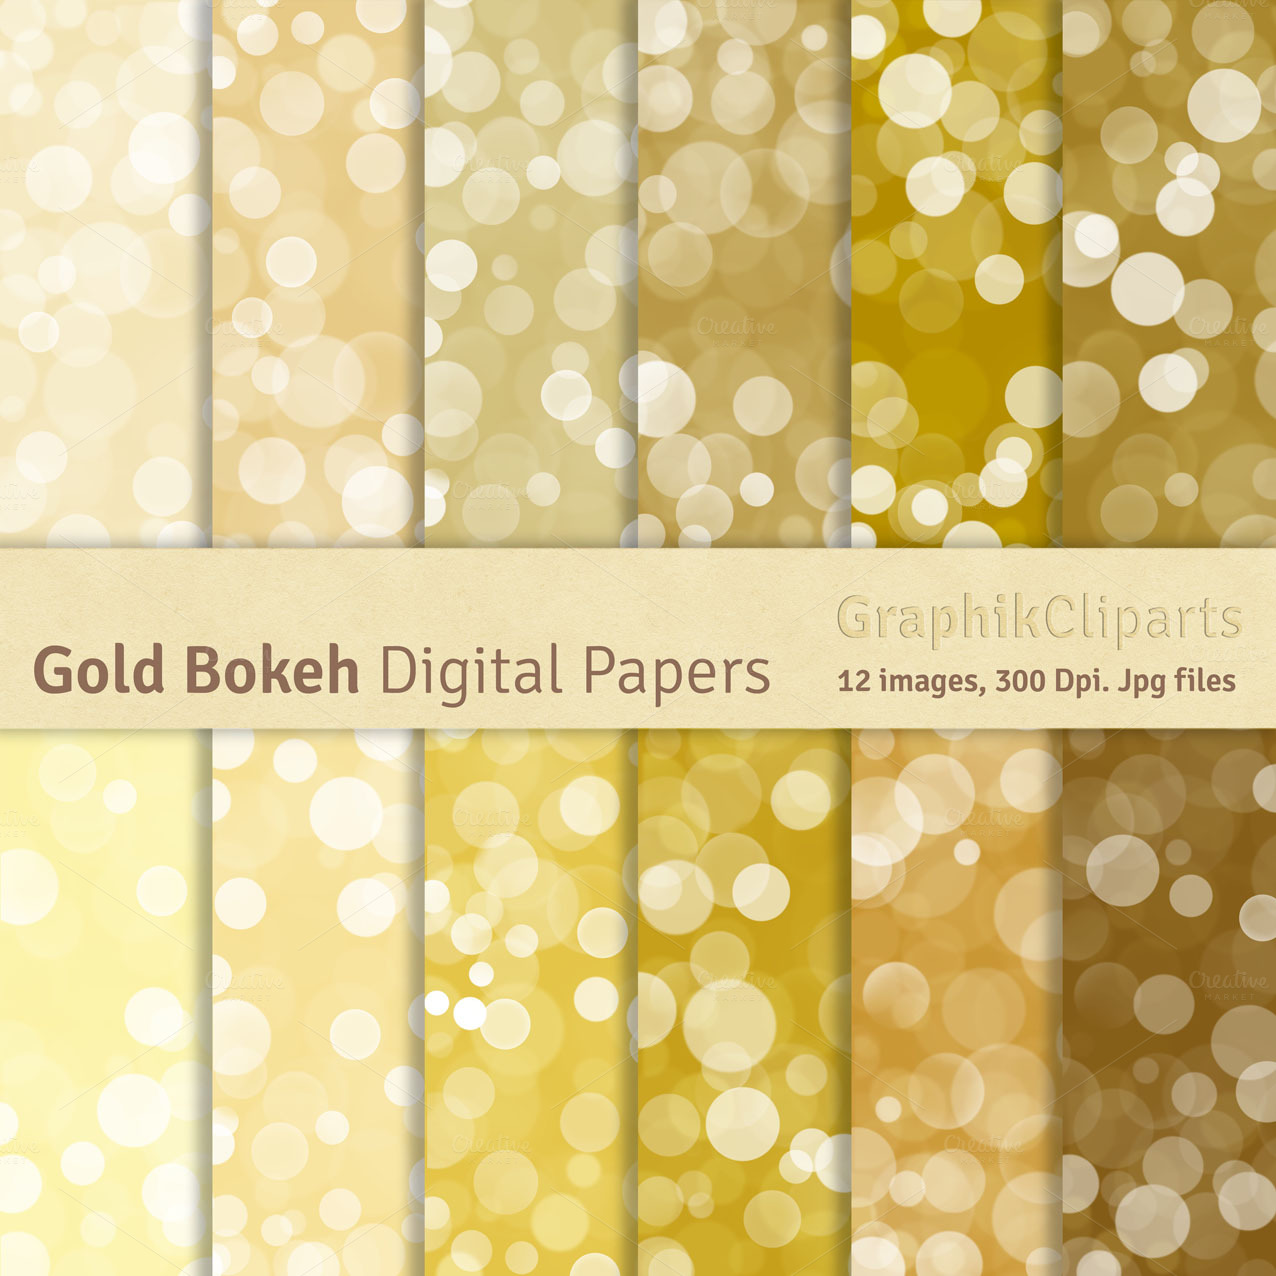 Gold-Bokeh-Digital-Papers